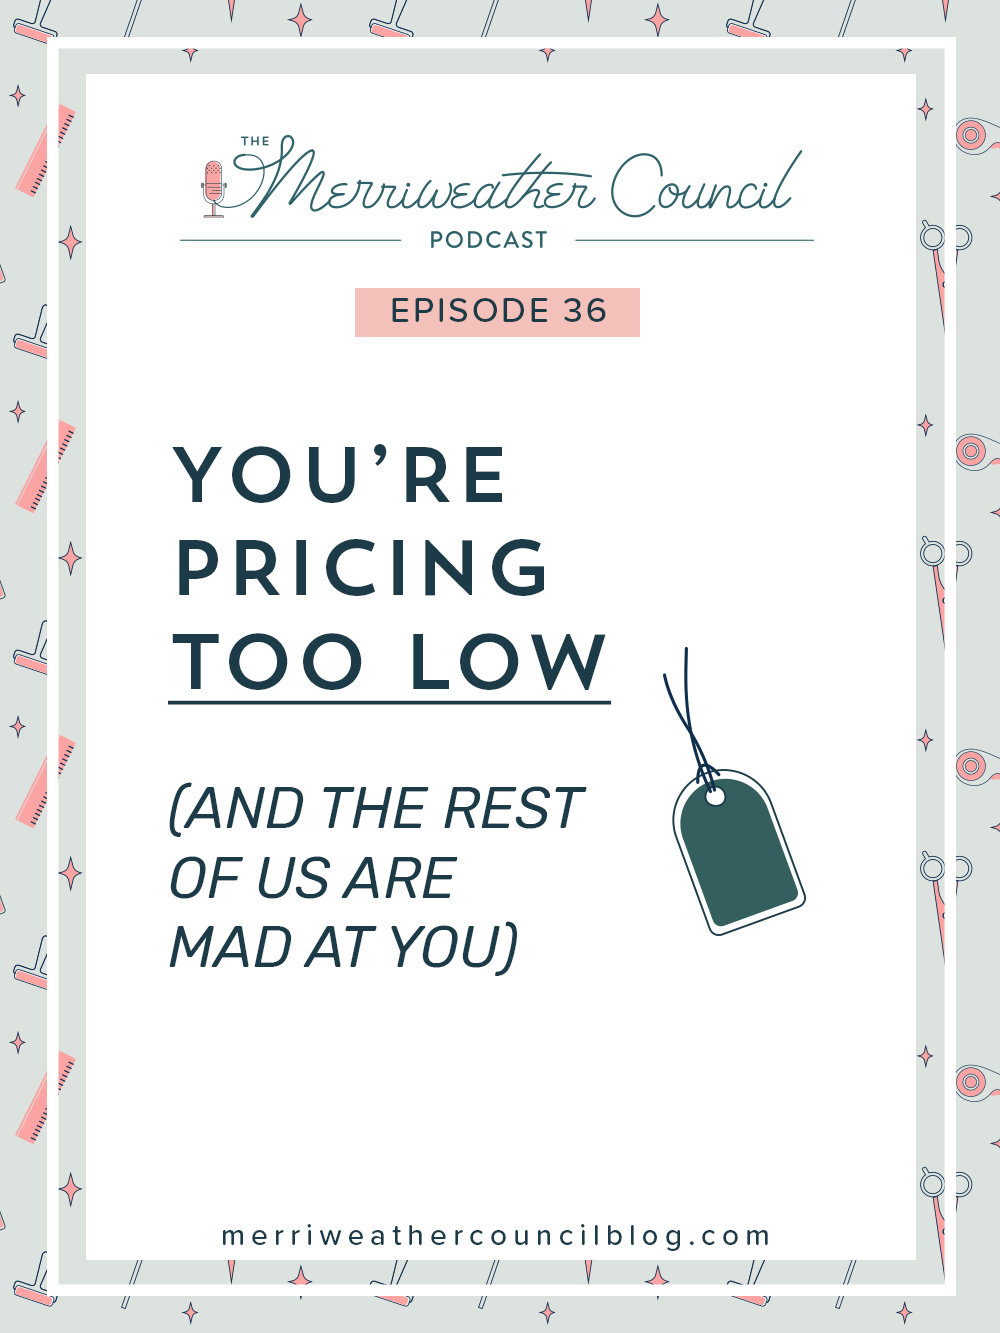 Episode 36: You're Pricing Too Low (and the Rest of us Are Mad at You) | The Merriweather Council Podcast